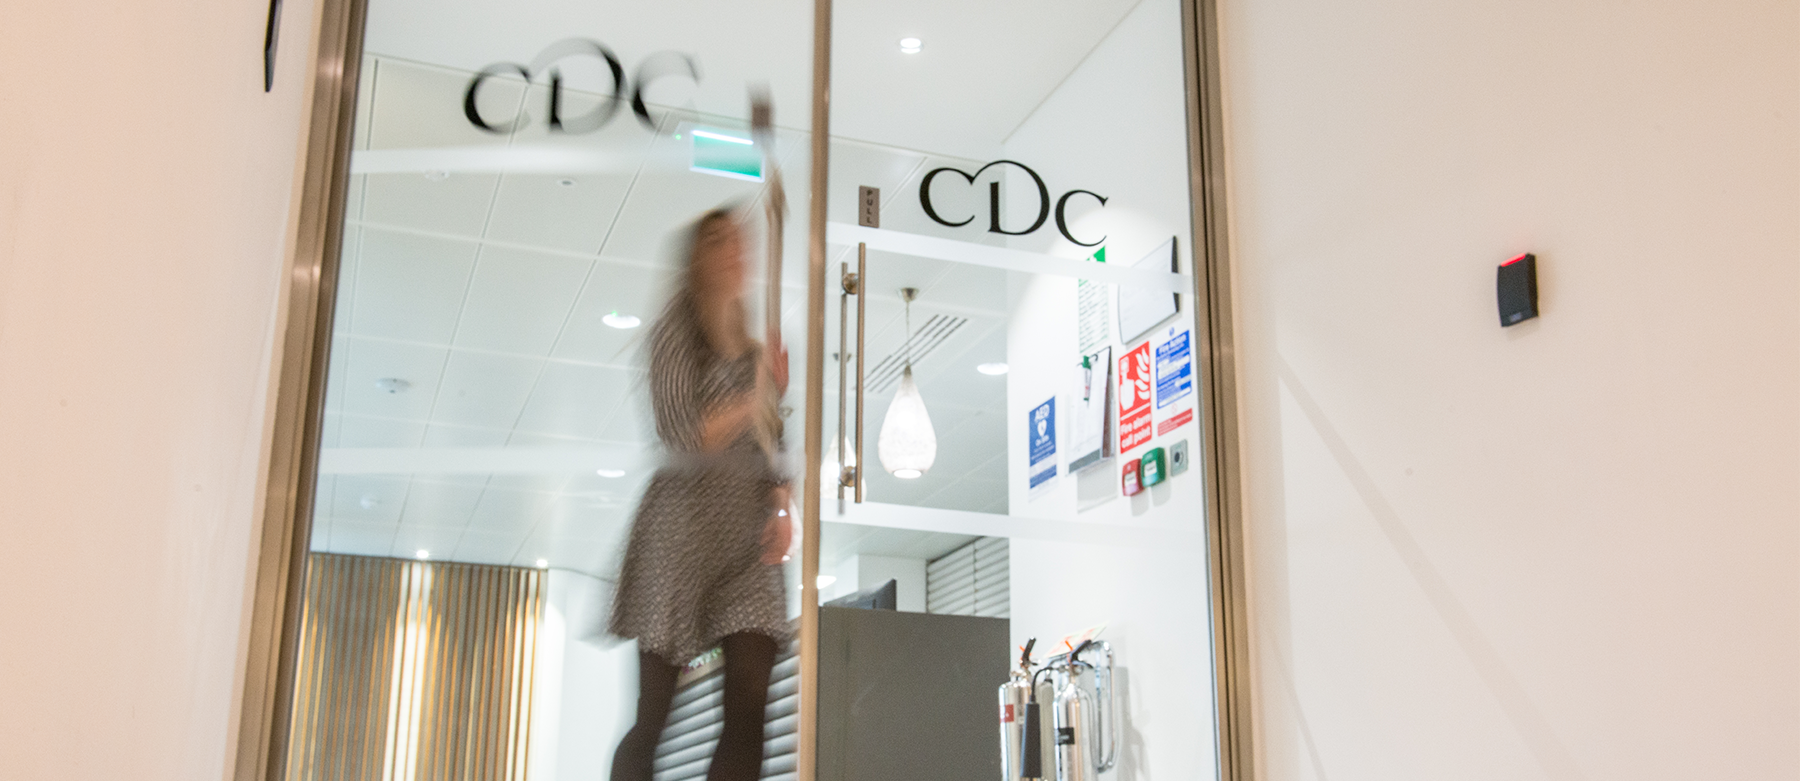 CDC appoints two new Non-Executive Directors | CDC Group